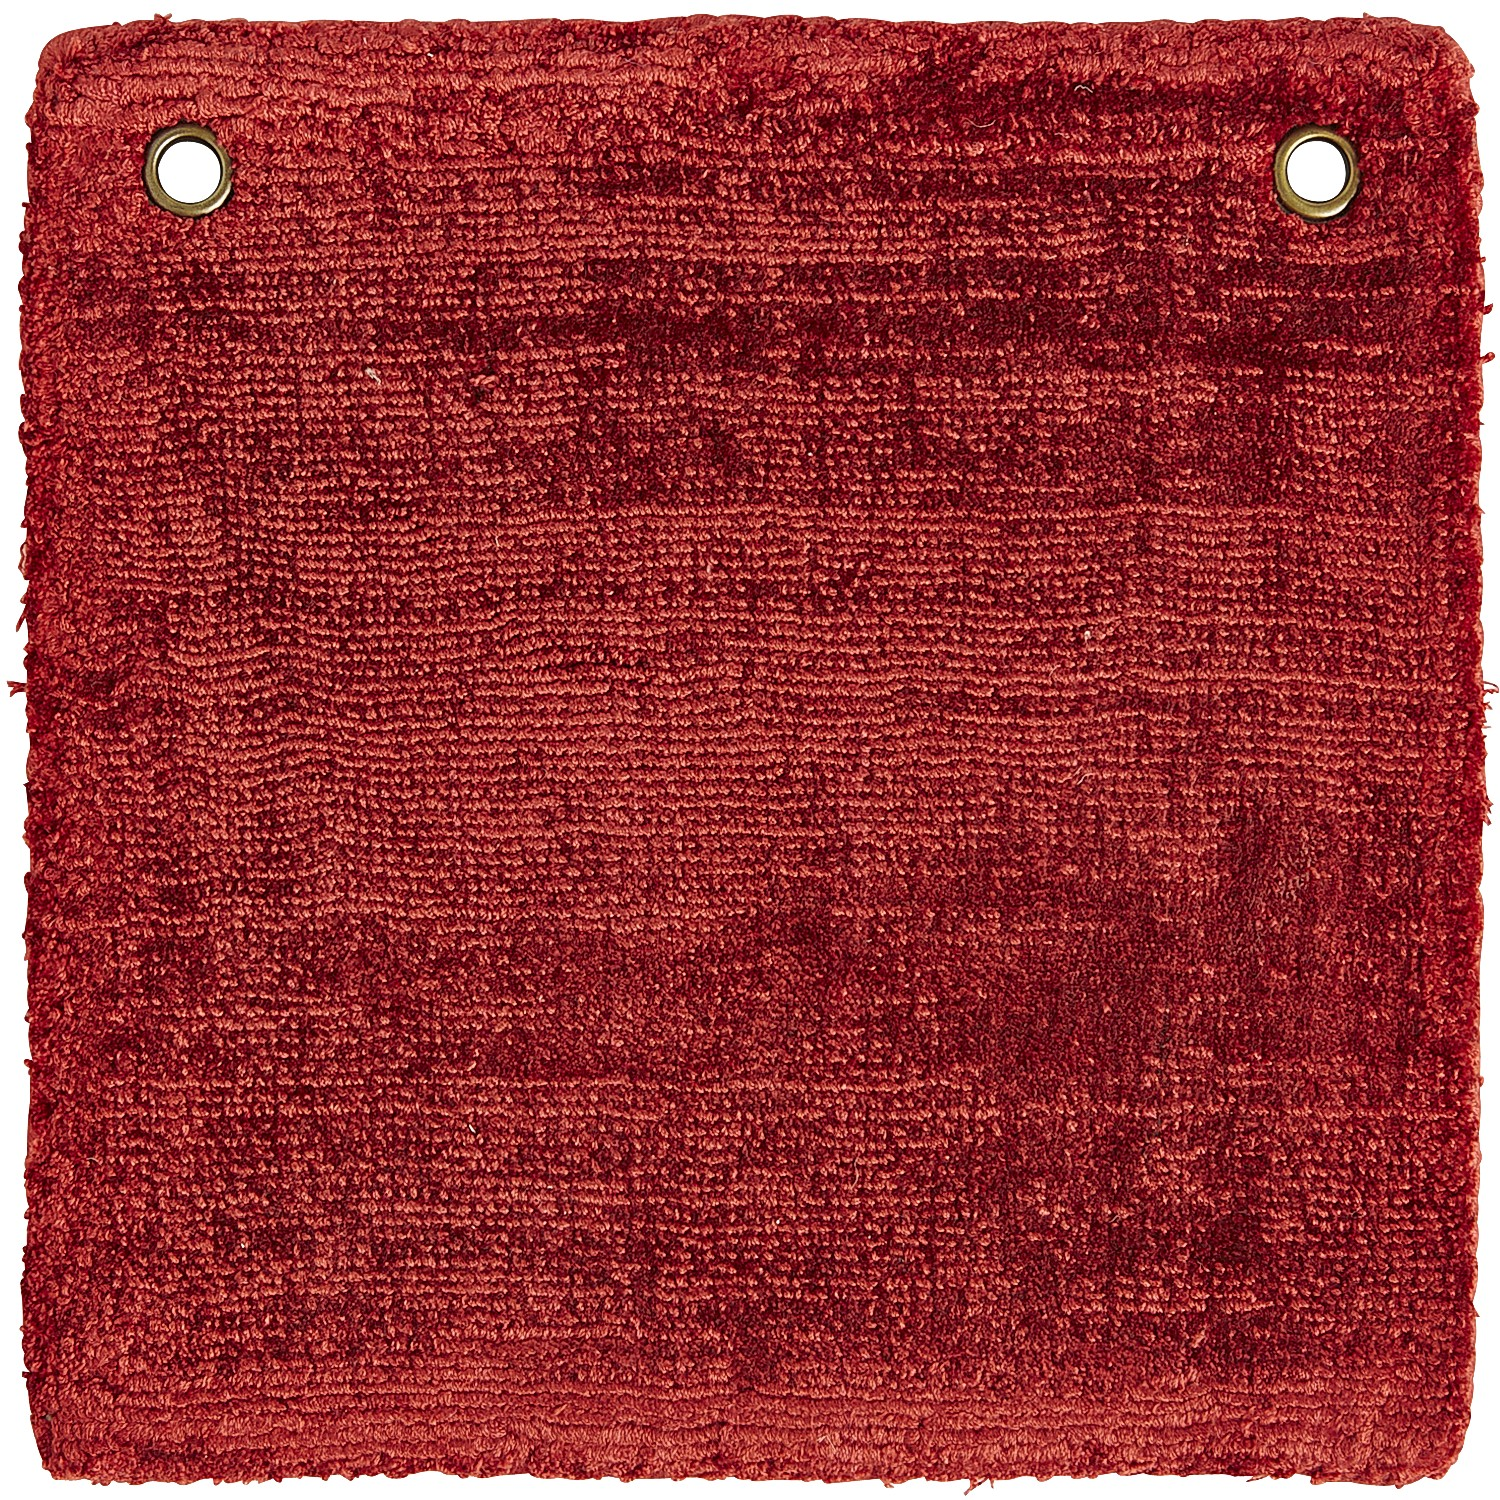 Luxe Rug Swatch - Red